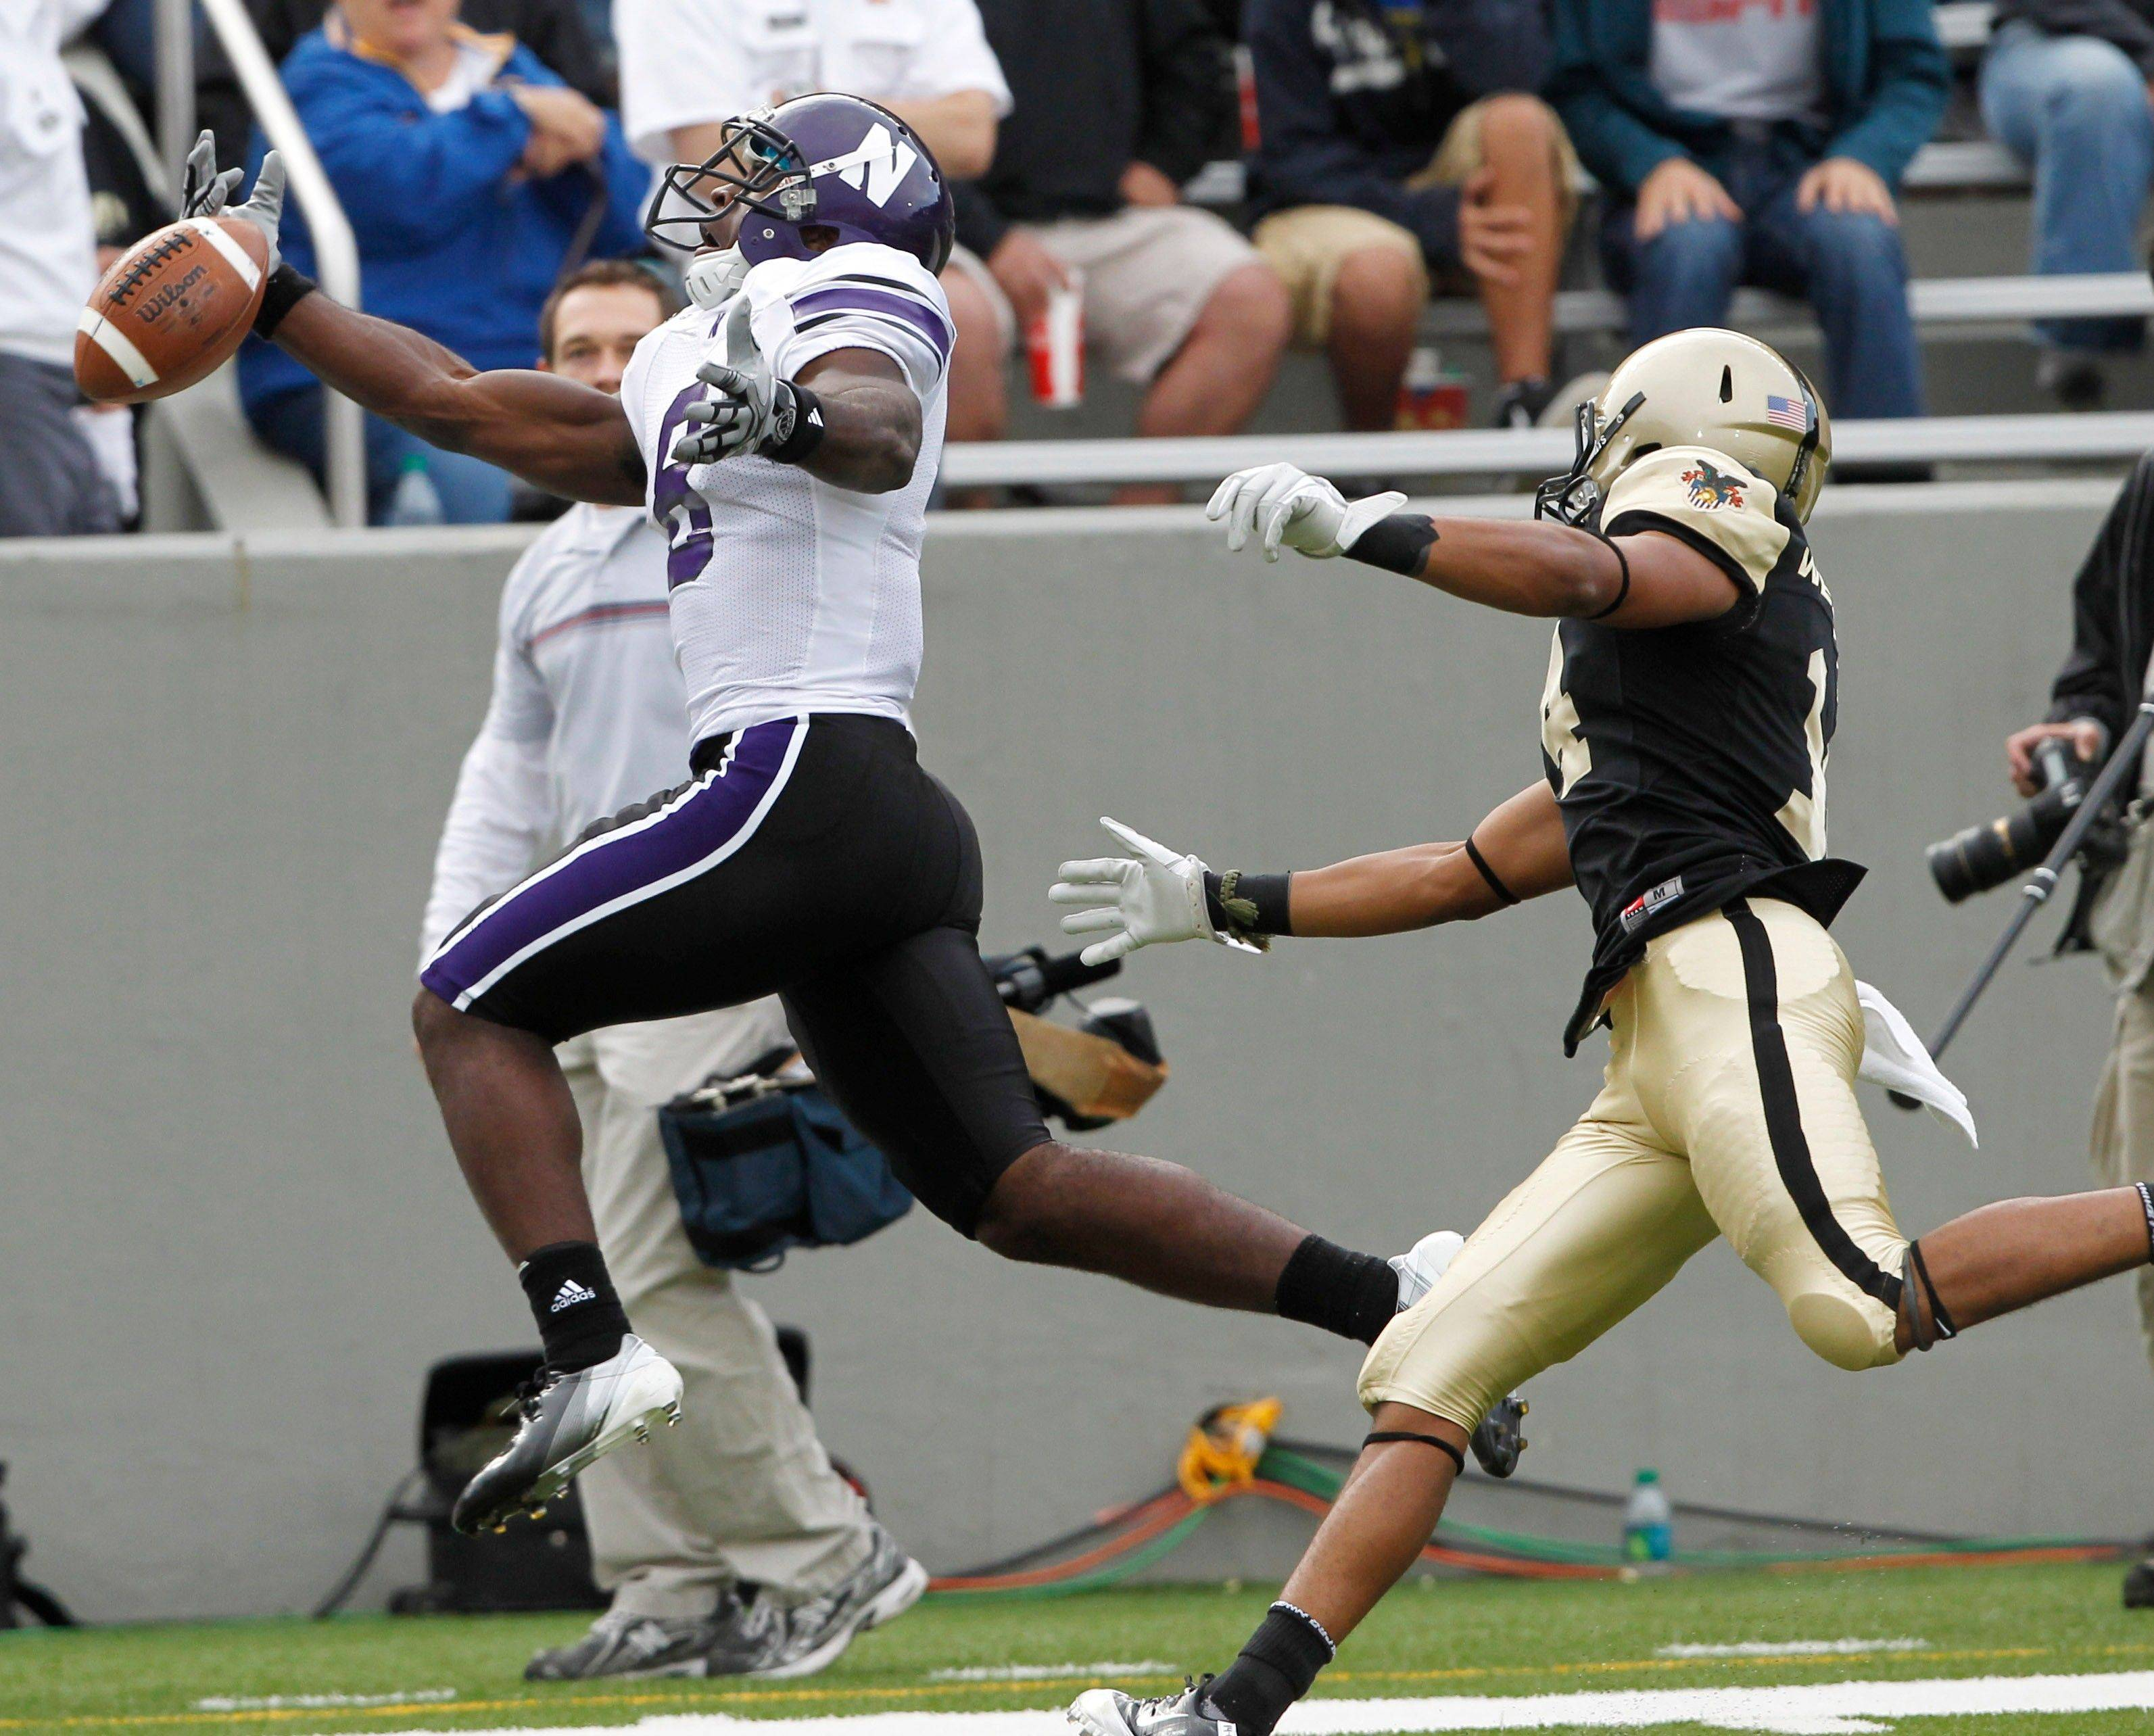 Northwestern's Demetrius Fields (8) can't make the catch in front of Army defender Josh Jackson (14) during the second half of an NCAA college football game in West Point, N.Y., on Saturday, Sept. 17, 2011. Army won, 21-14.